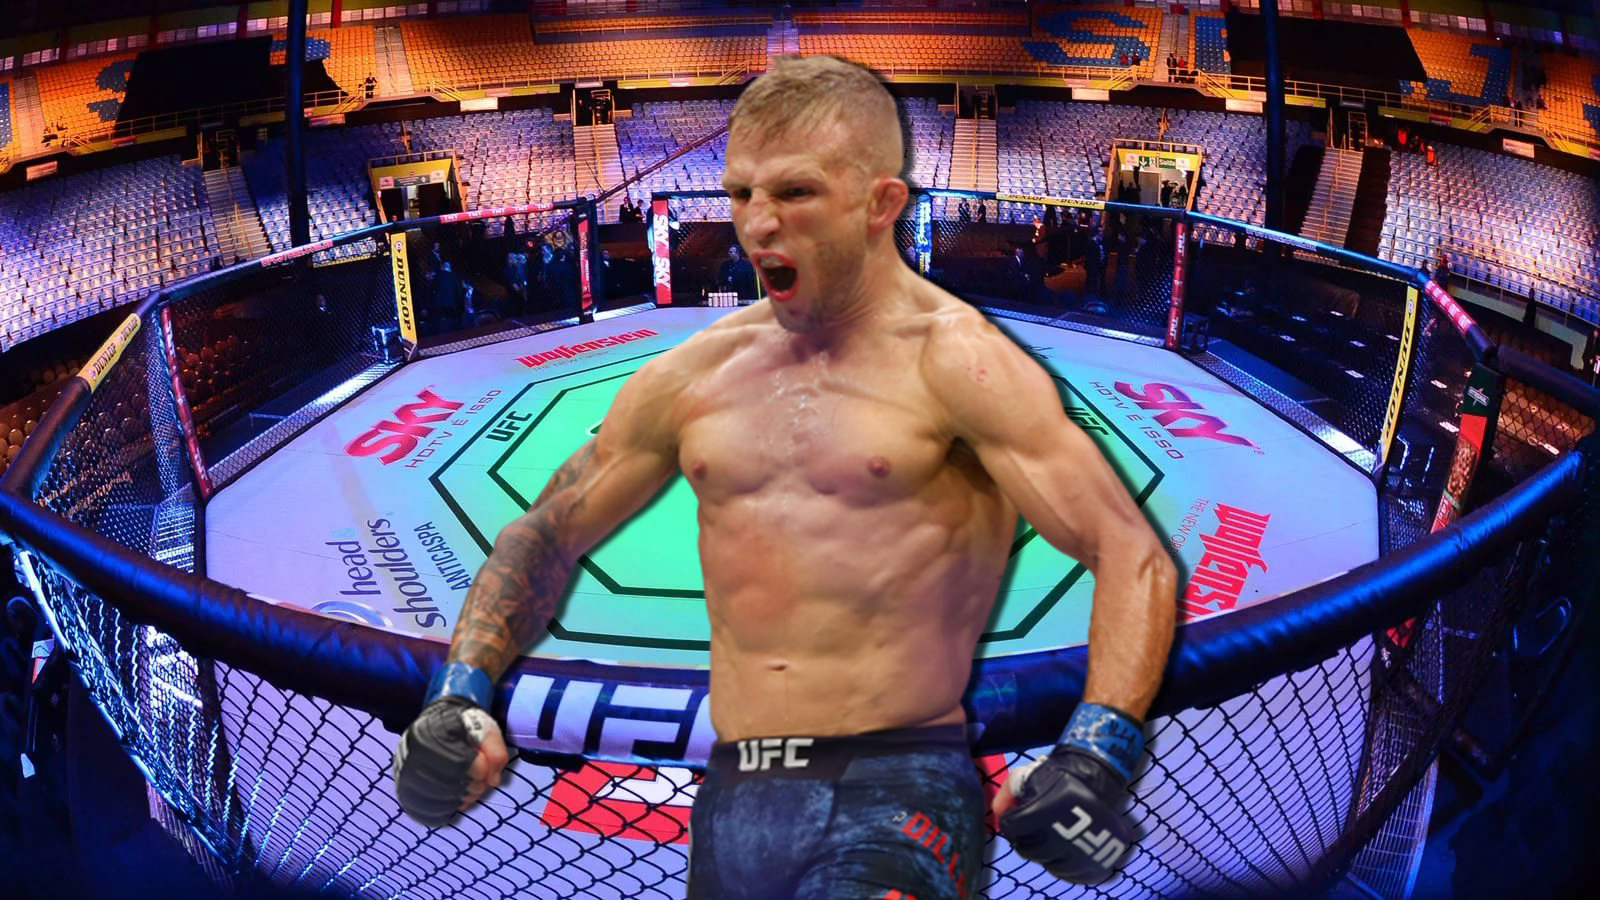 T.J. Dillashaw received permission to return to the Octagon